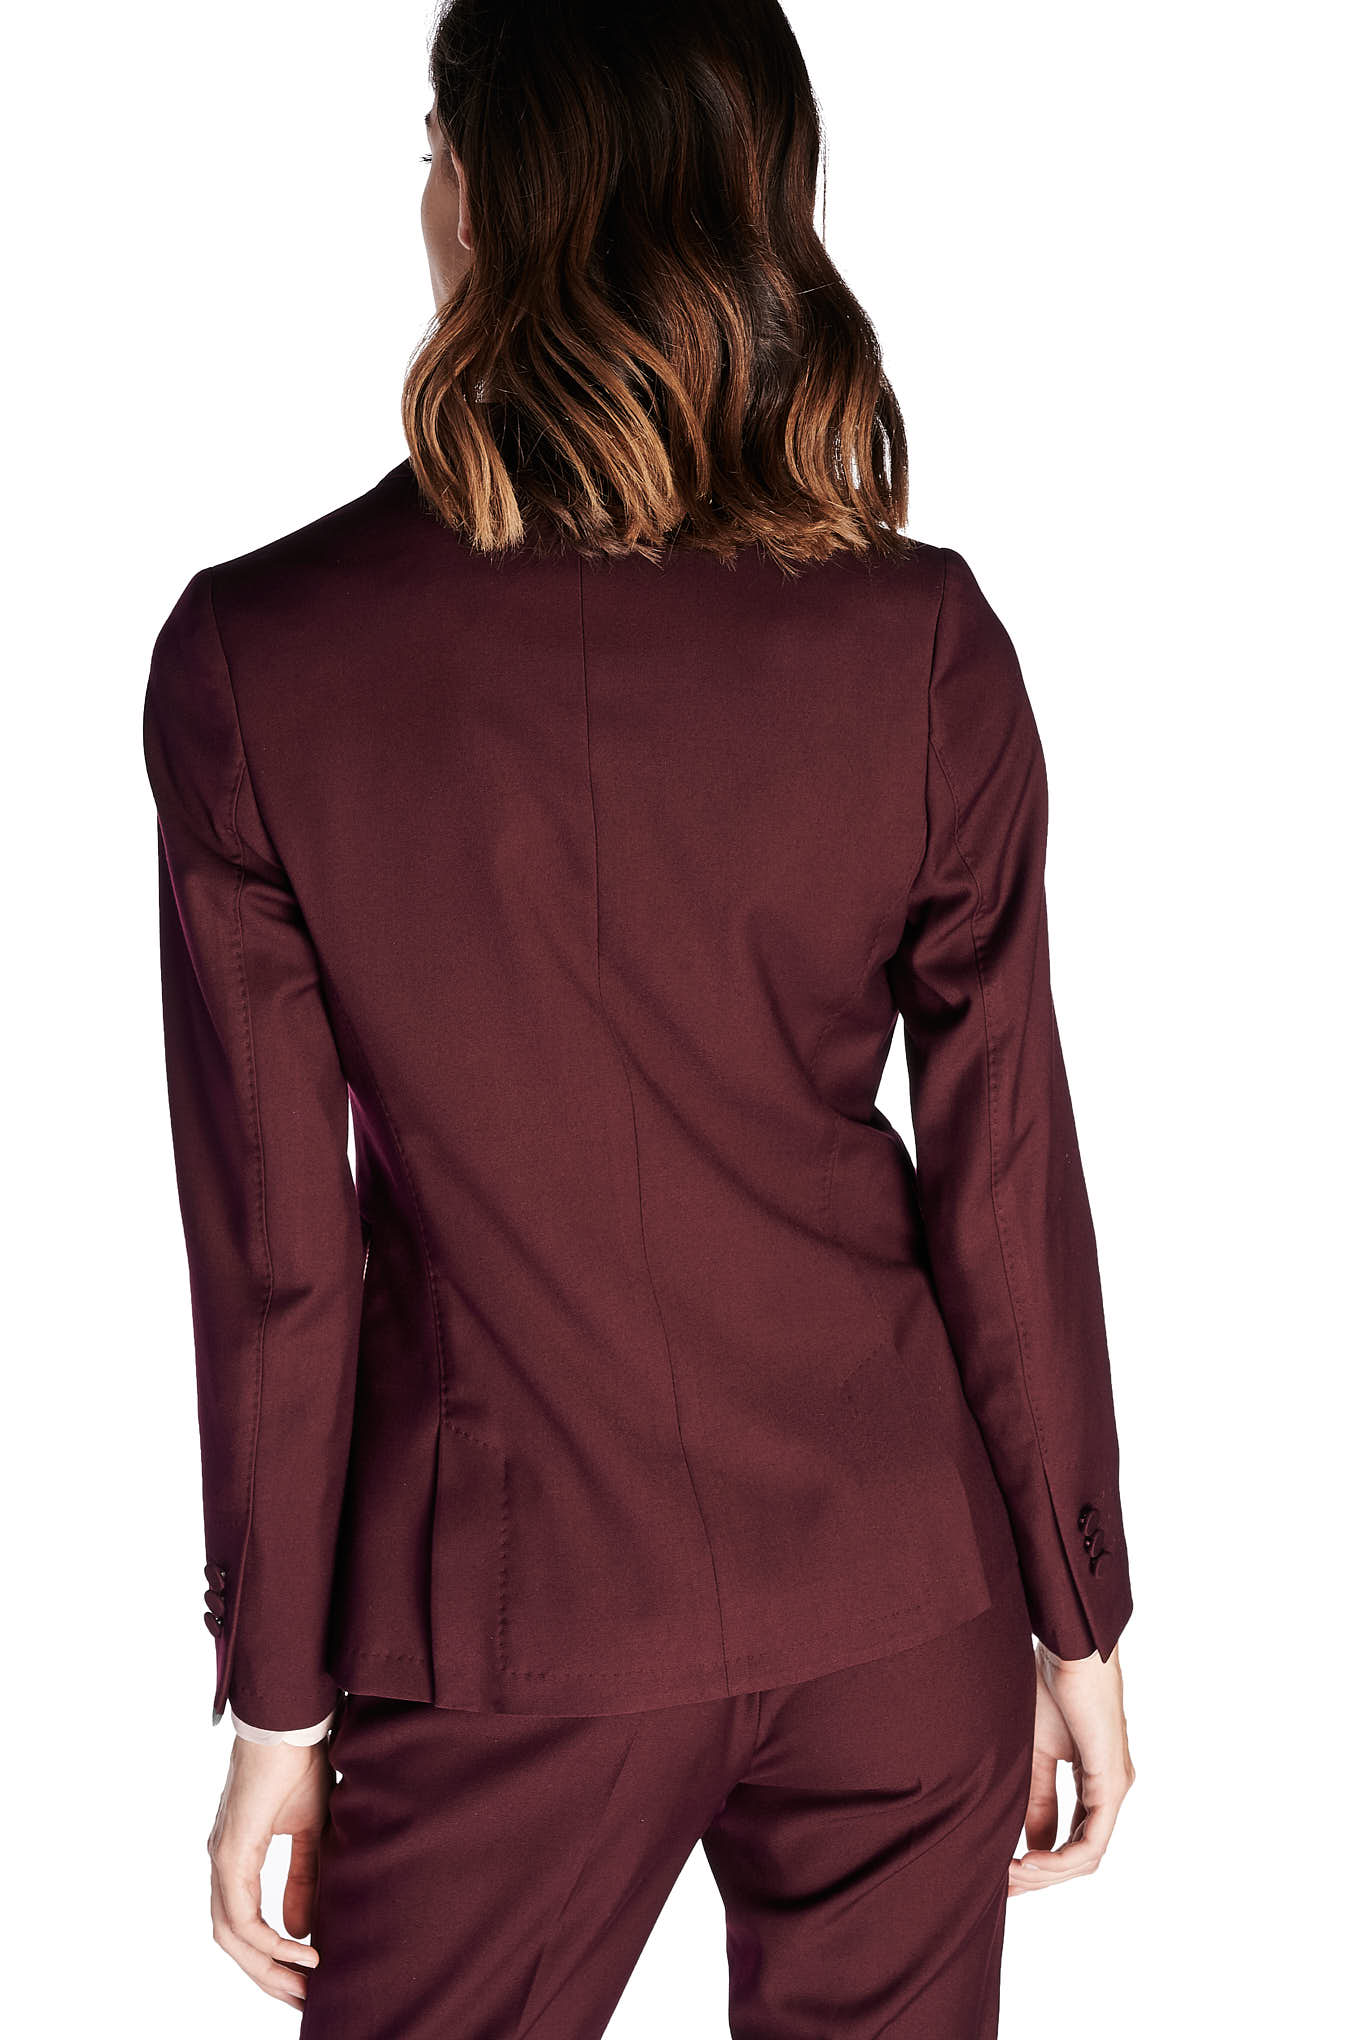 Suit Plum Classic Woman